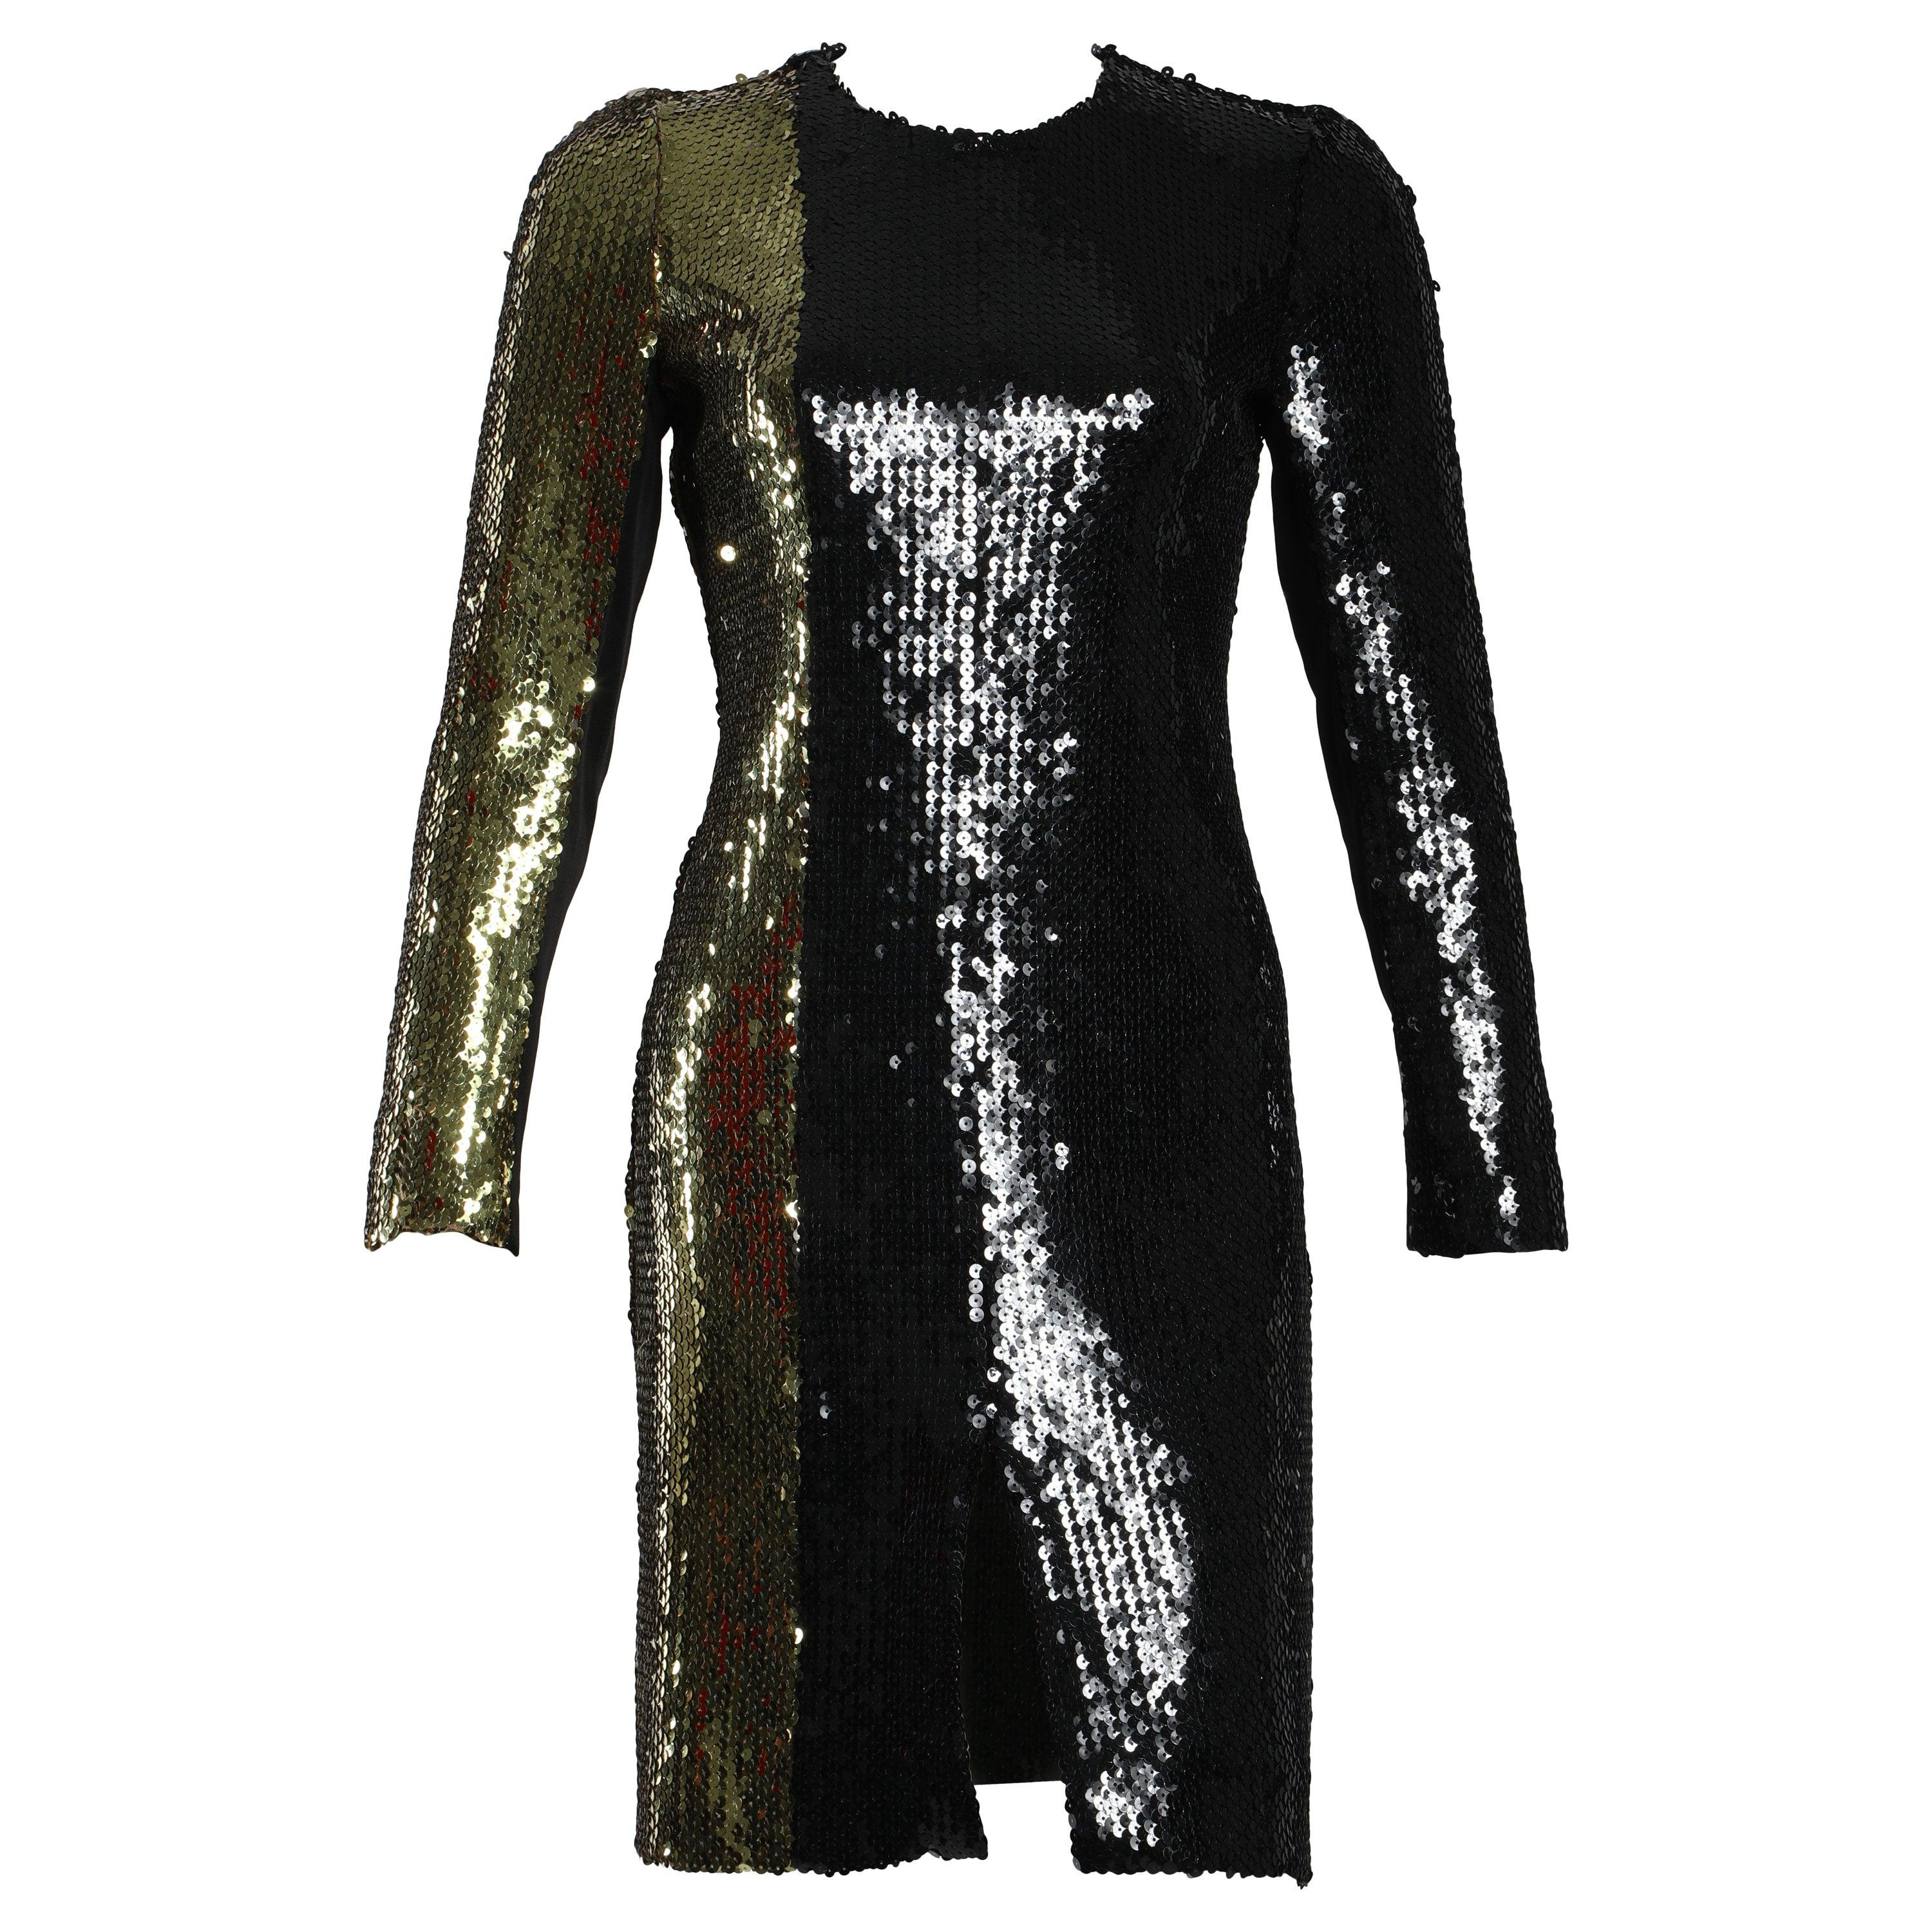 Sonia Rykiel Black and Gold Long Sleeve Sequin Cocktail Dress